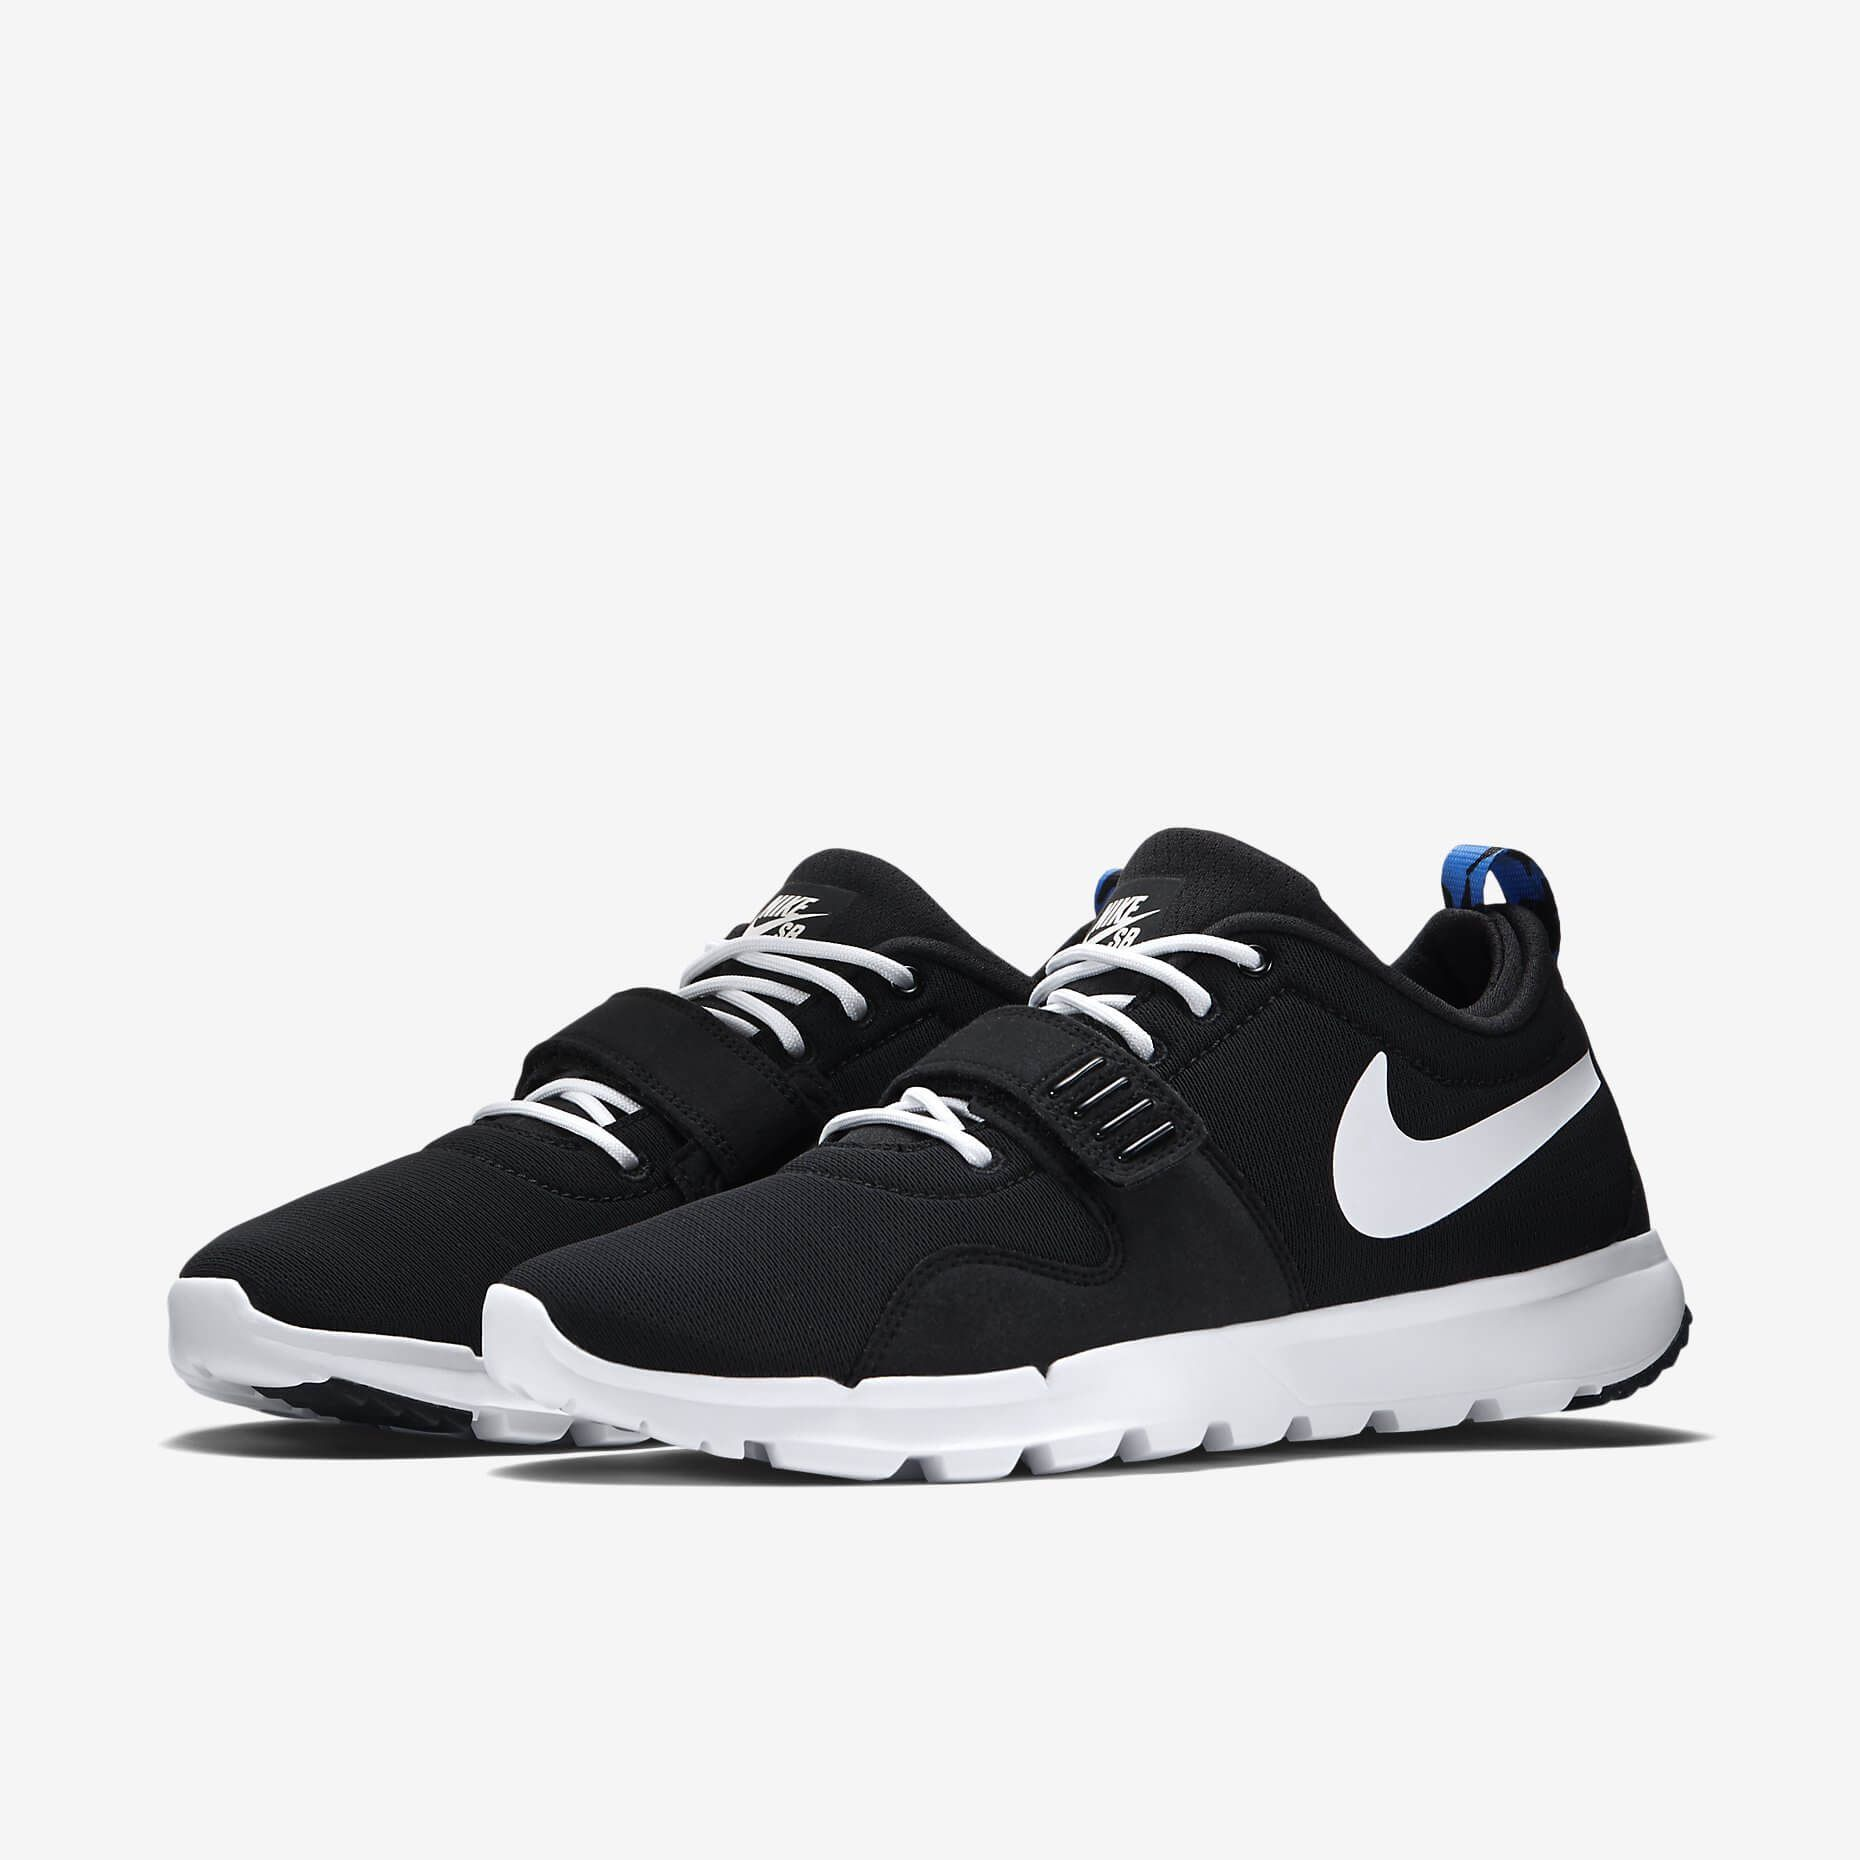 2014 saw the return of the Trainerendor which was a huge success. 2015 sees  Nike SB bring it back with the SE Black White edition.